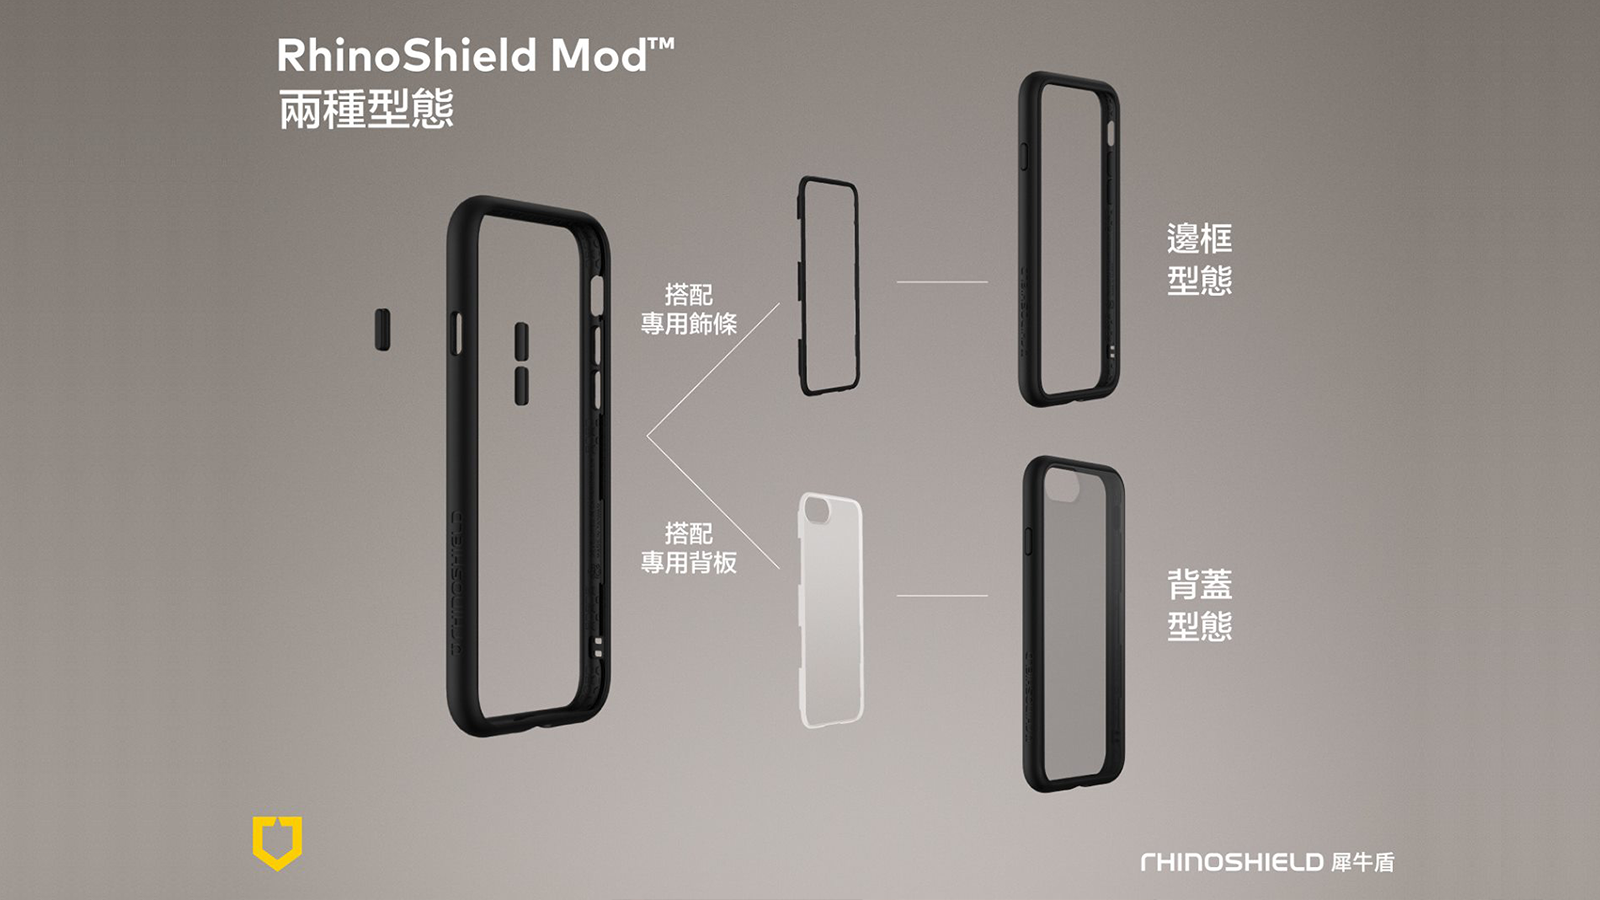 rhino-shield-mod-iphone-7-plus-iphone-8-plus-iphone-x-camera-kit